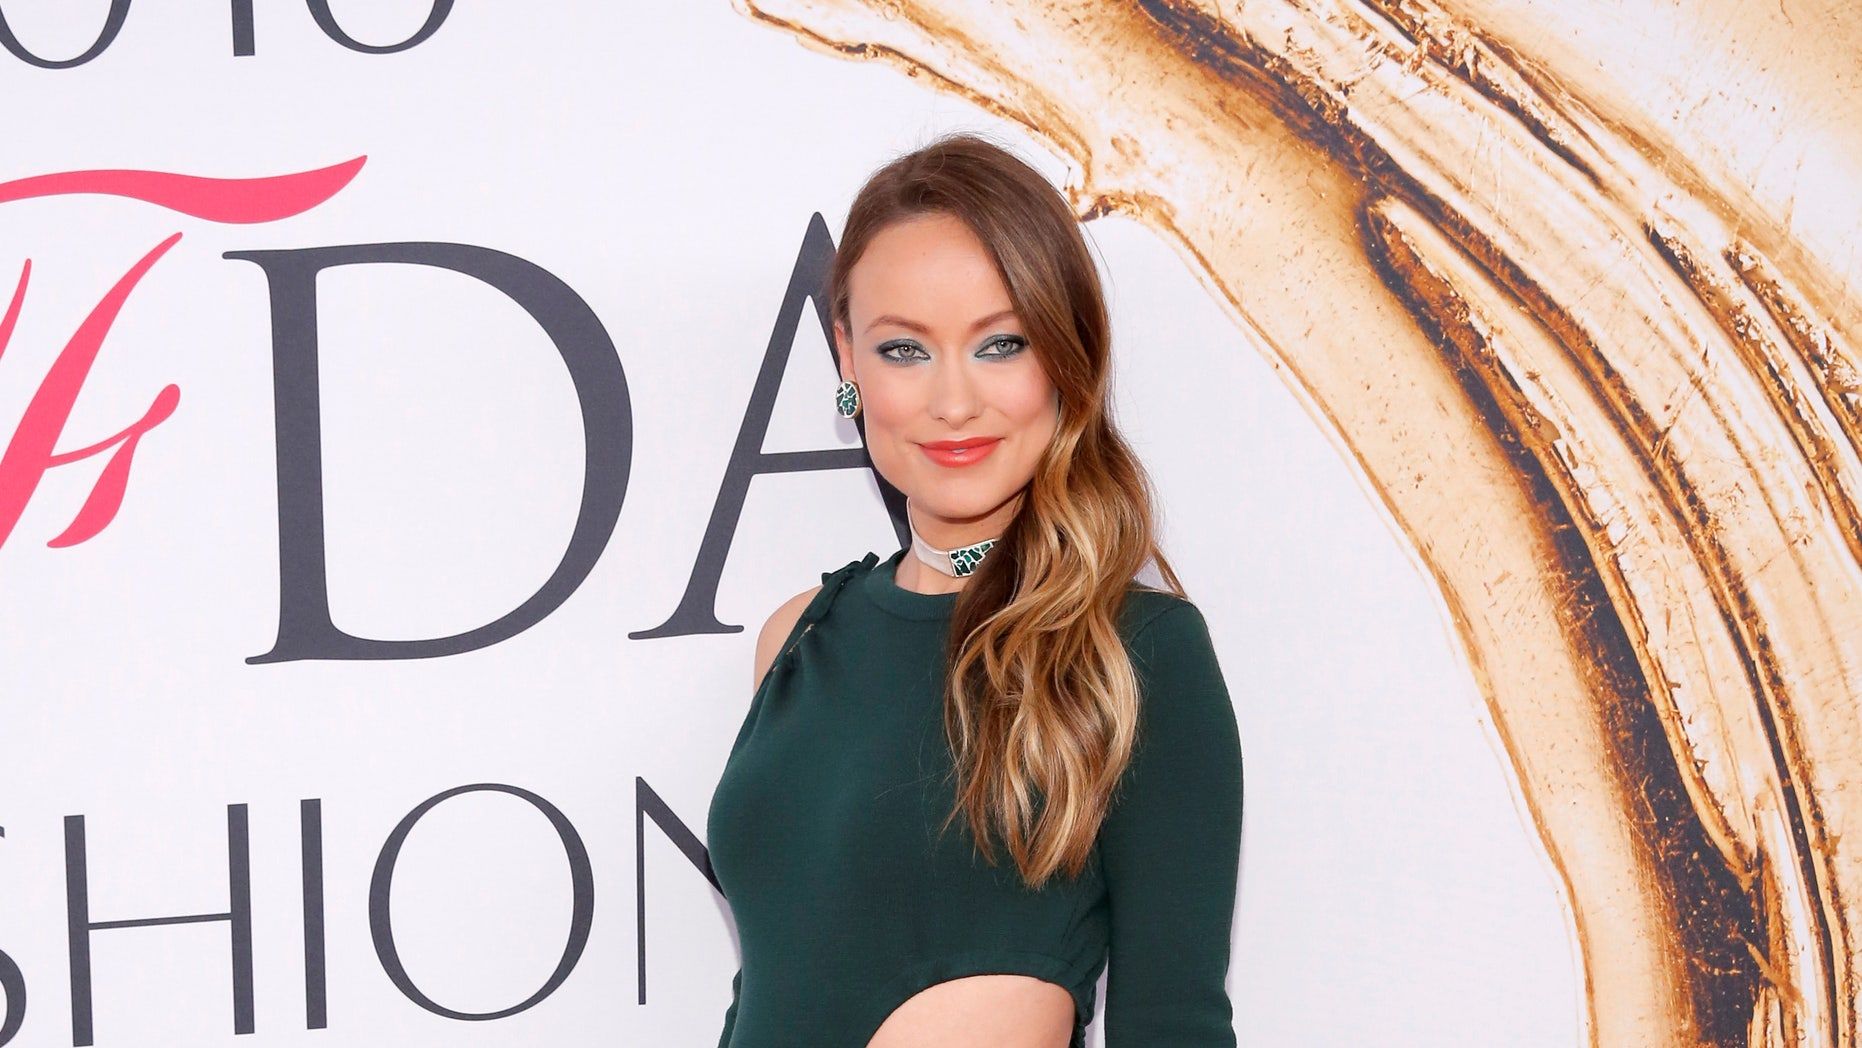 Actress Olivia Wilde arrives for the 2016 CFDA Fashion Awards in Manhattan, New York, U.S., June 6, 2016.